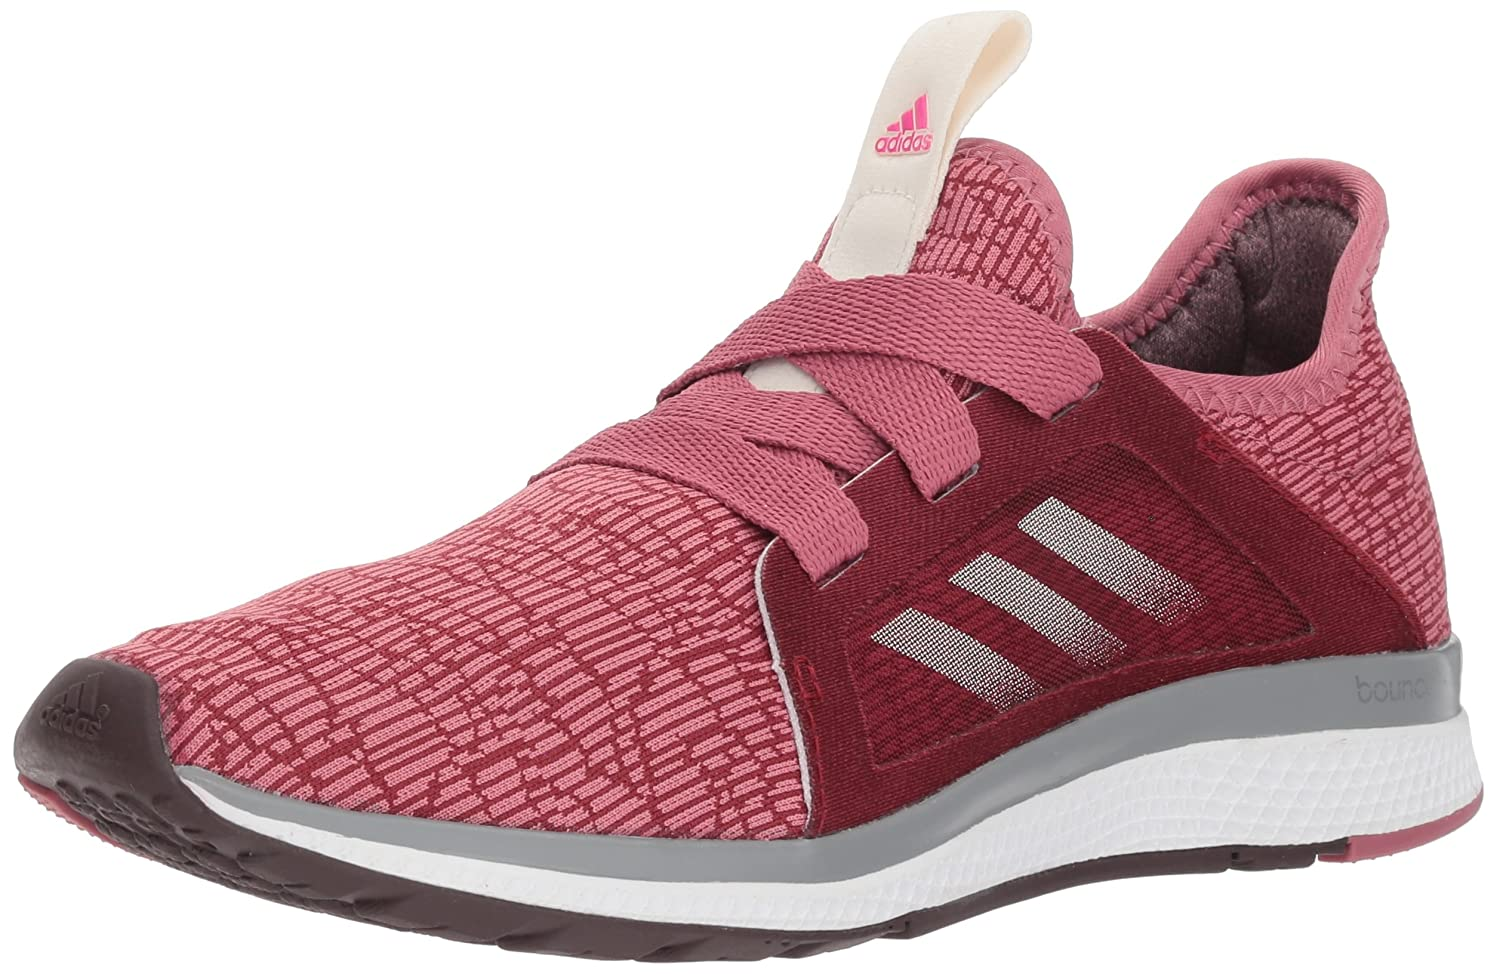 Noble Maroon Night rouge Shock rose 40.5 EU adidas Femmes Edge Lux 2 Chaussures Athlétiques